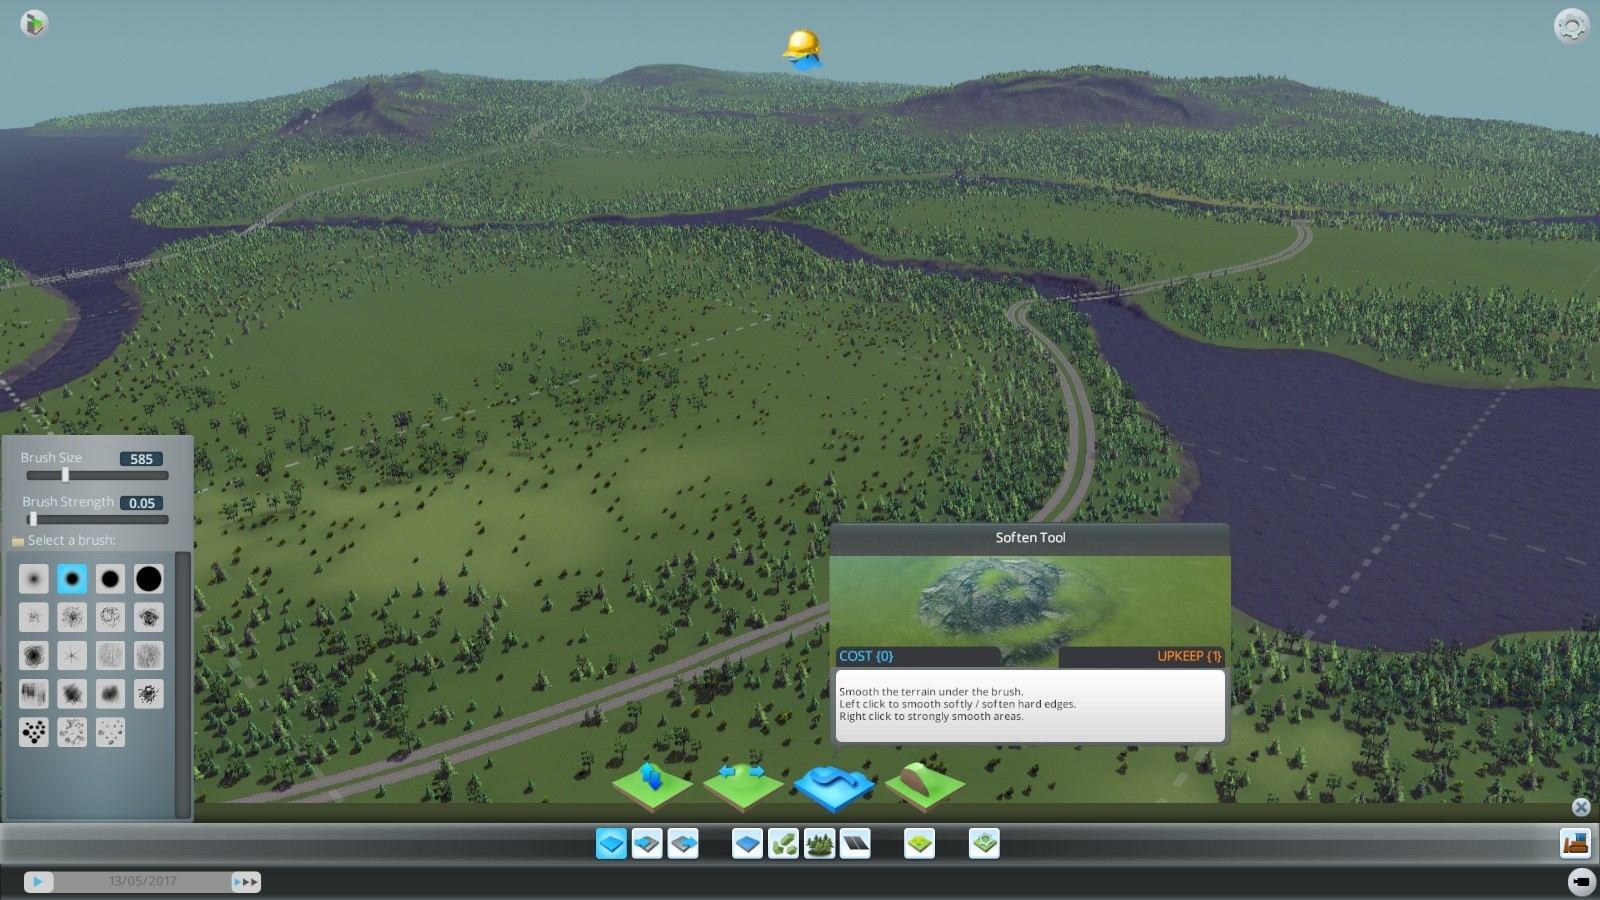 Cities skylines dev diary details the intricacies of the map editor select a layout interesting terrain gumiabroncs Gallery